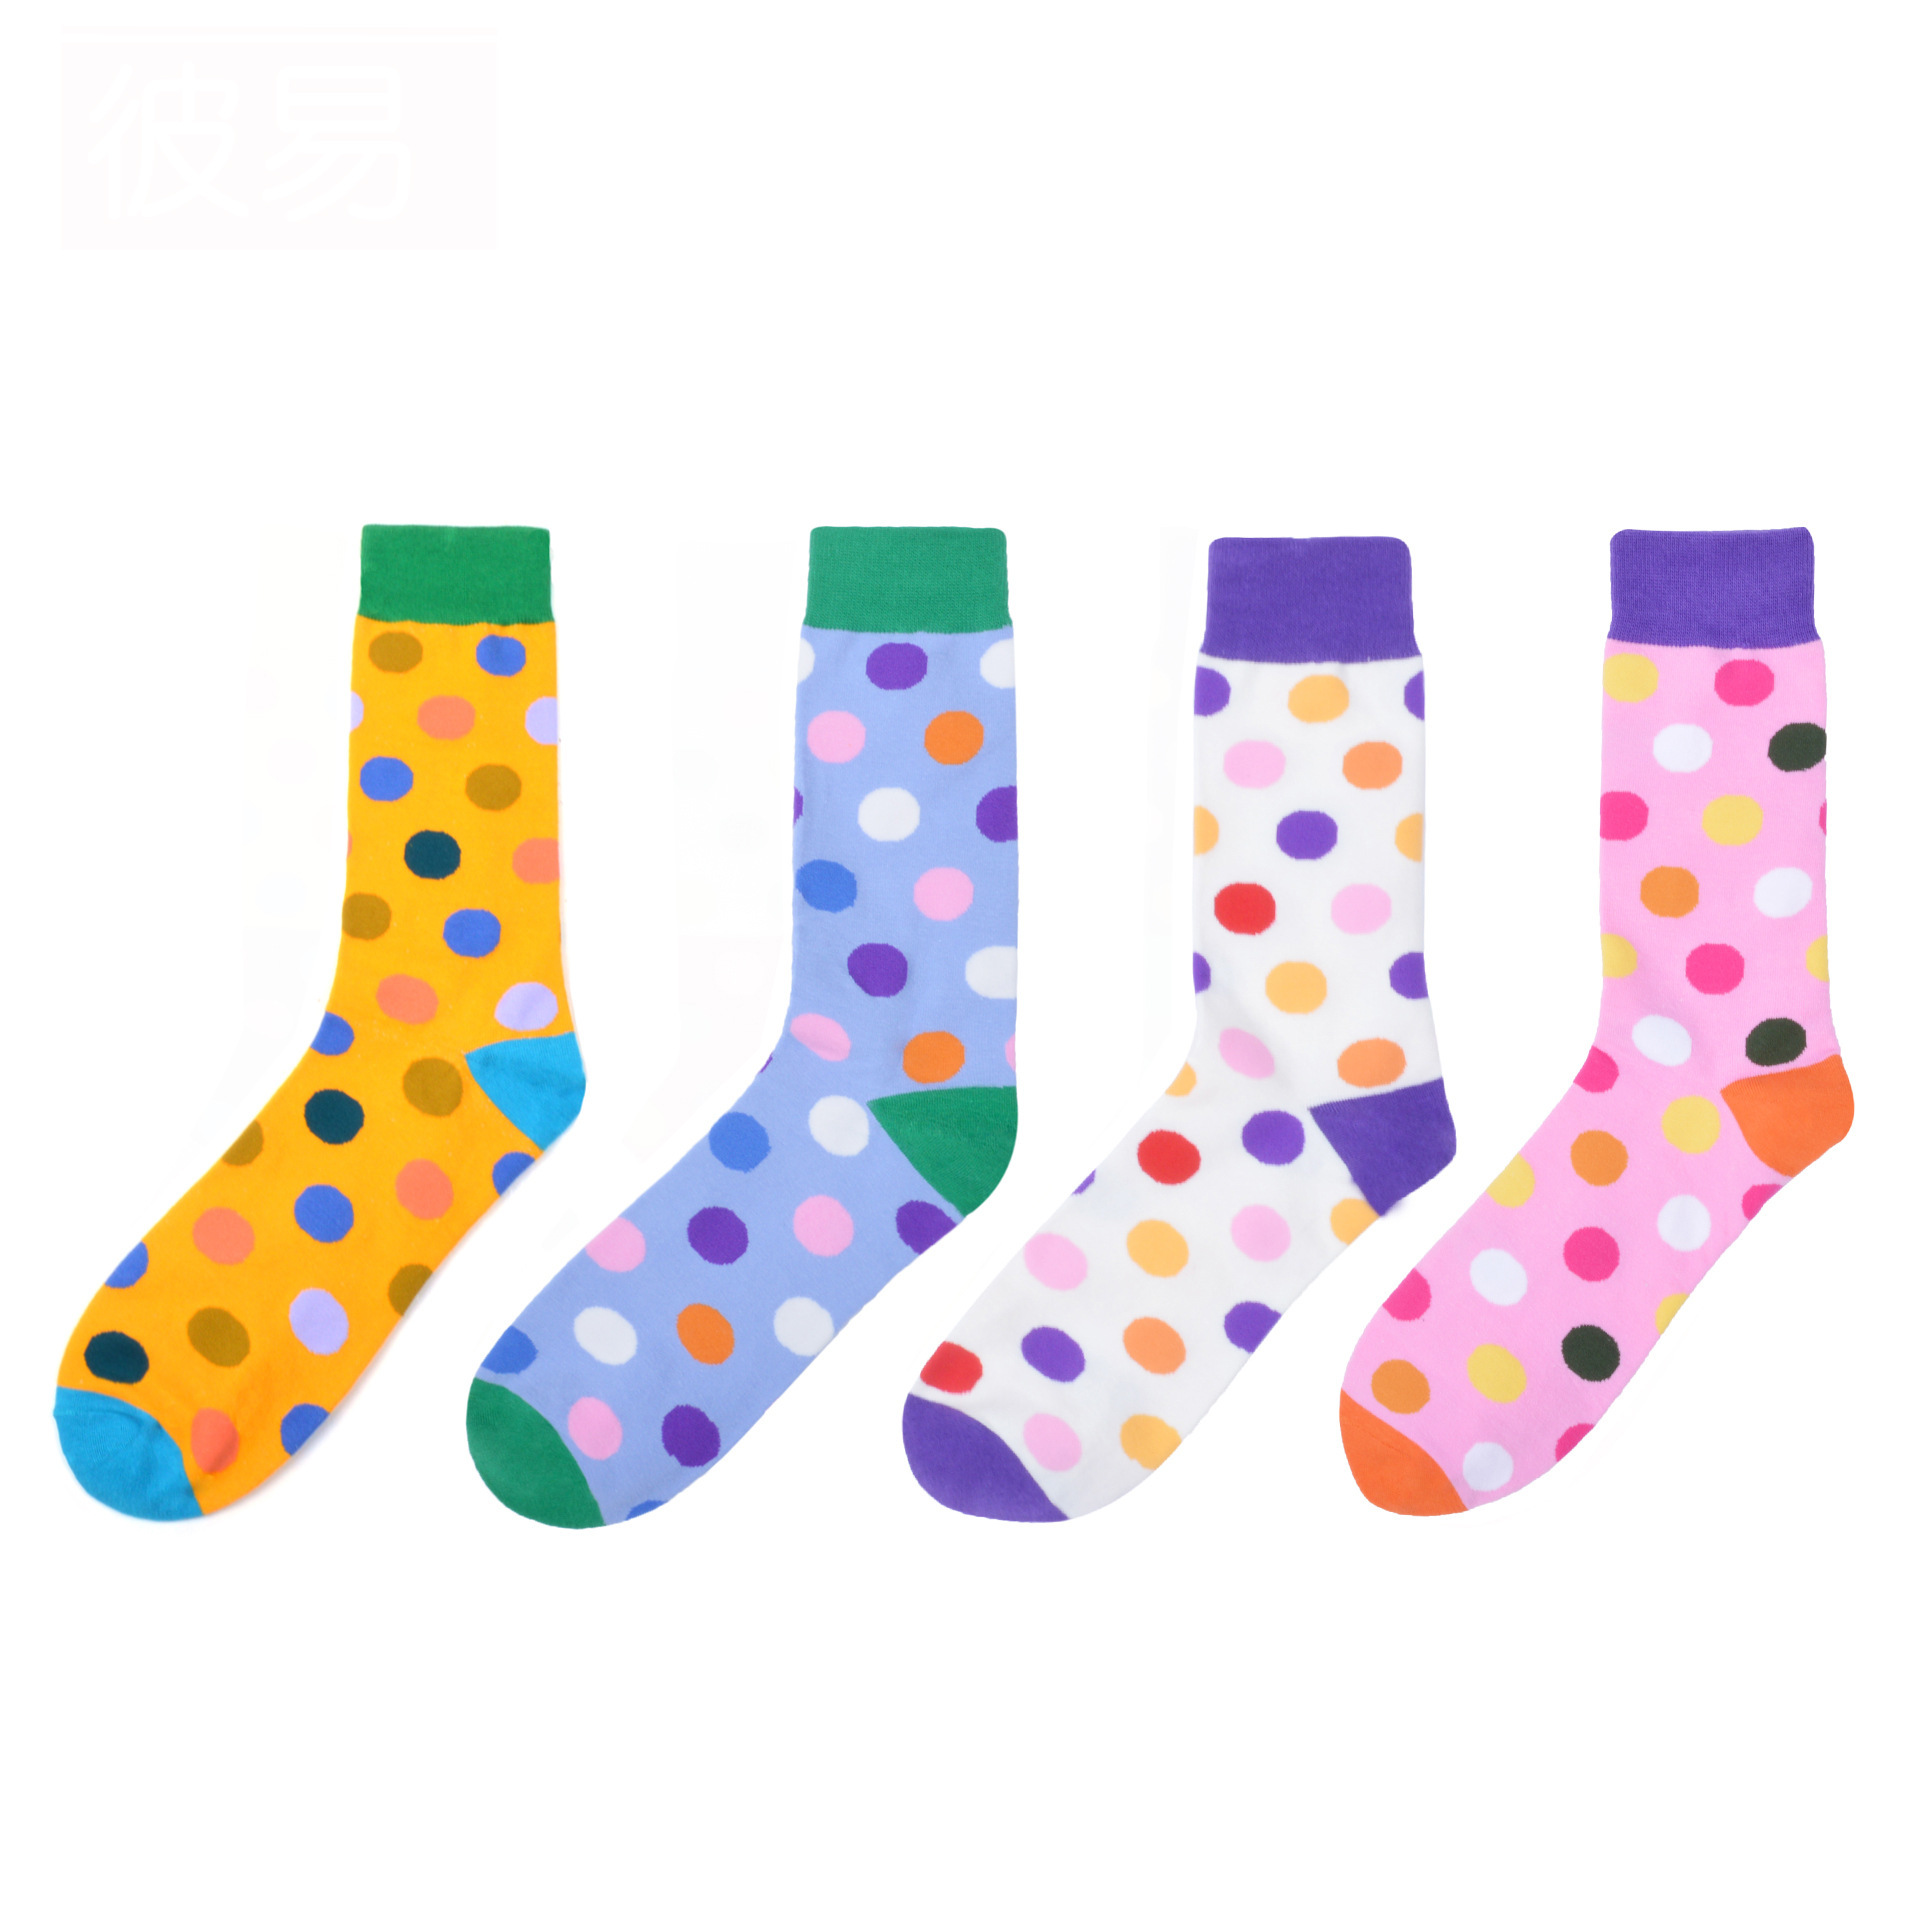 1 Pair 2019 Newest Colorful Men's Coloured Dots Pattern Combed Cotton Socks Novelty Dress Casual Crew Wedding Socks